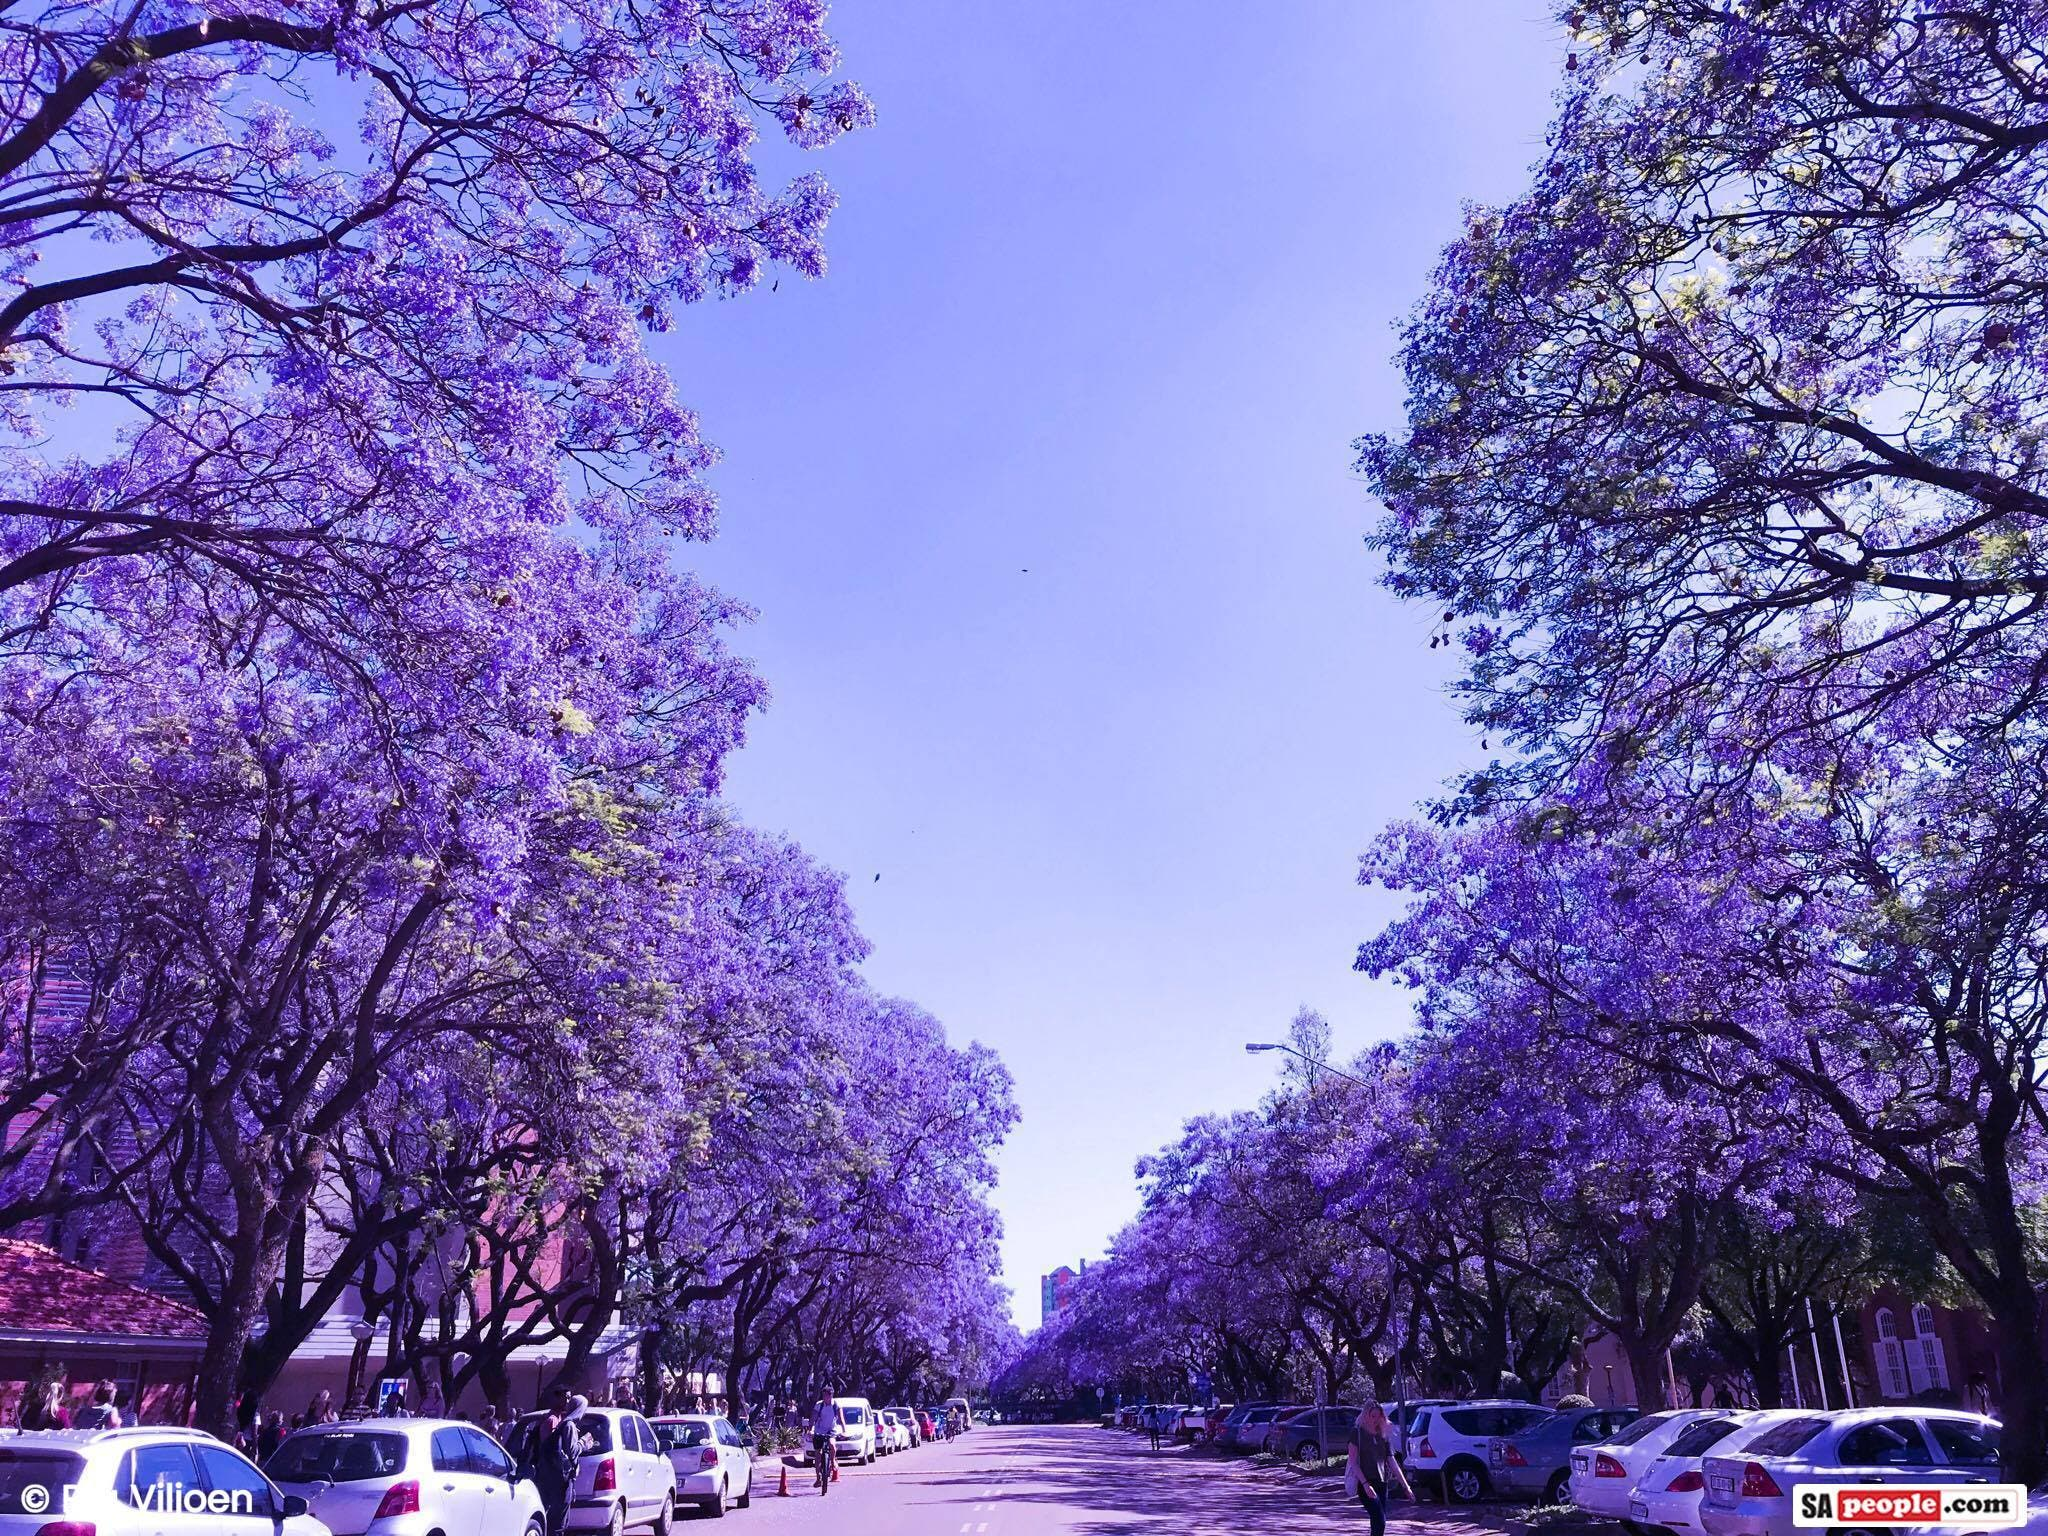 Jacaranda tree photos purple and white blossoms in jacaranda city jacaranda tree photos purple and white blossoms in jacaranda city pretoria south africa sapeople your worldwide south african community izmirmasajfo